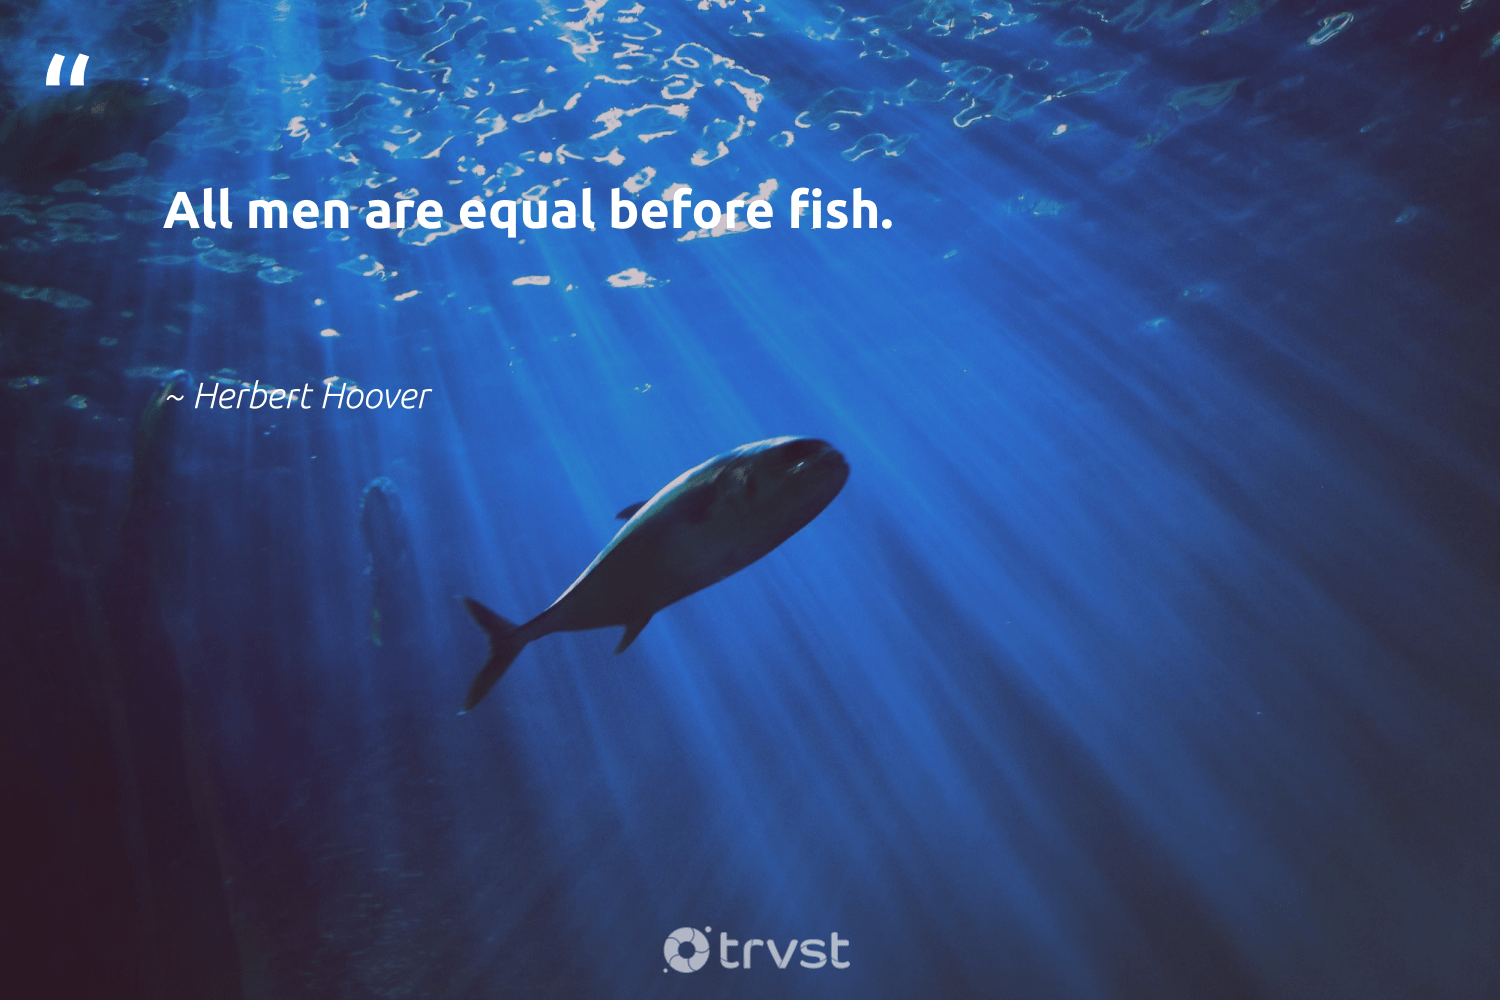 """""""All men are equal before fish.""""  - Herbert Hoover #trvst #quotes #fish #conservation #dosomething #savetheoceans #impact #oceanlove #planetearthfirst #protecttheoceans #collectiveaction #oceanconservation"""